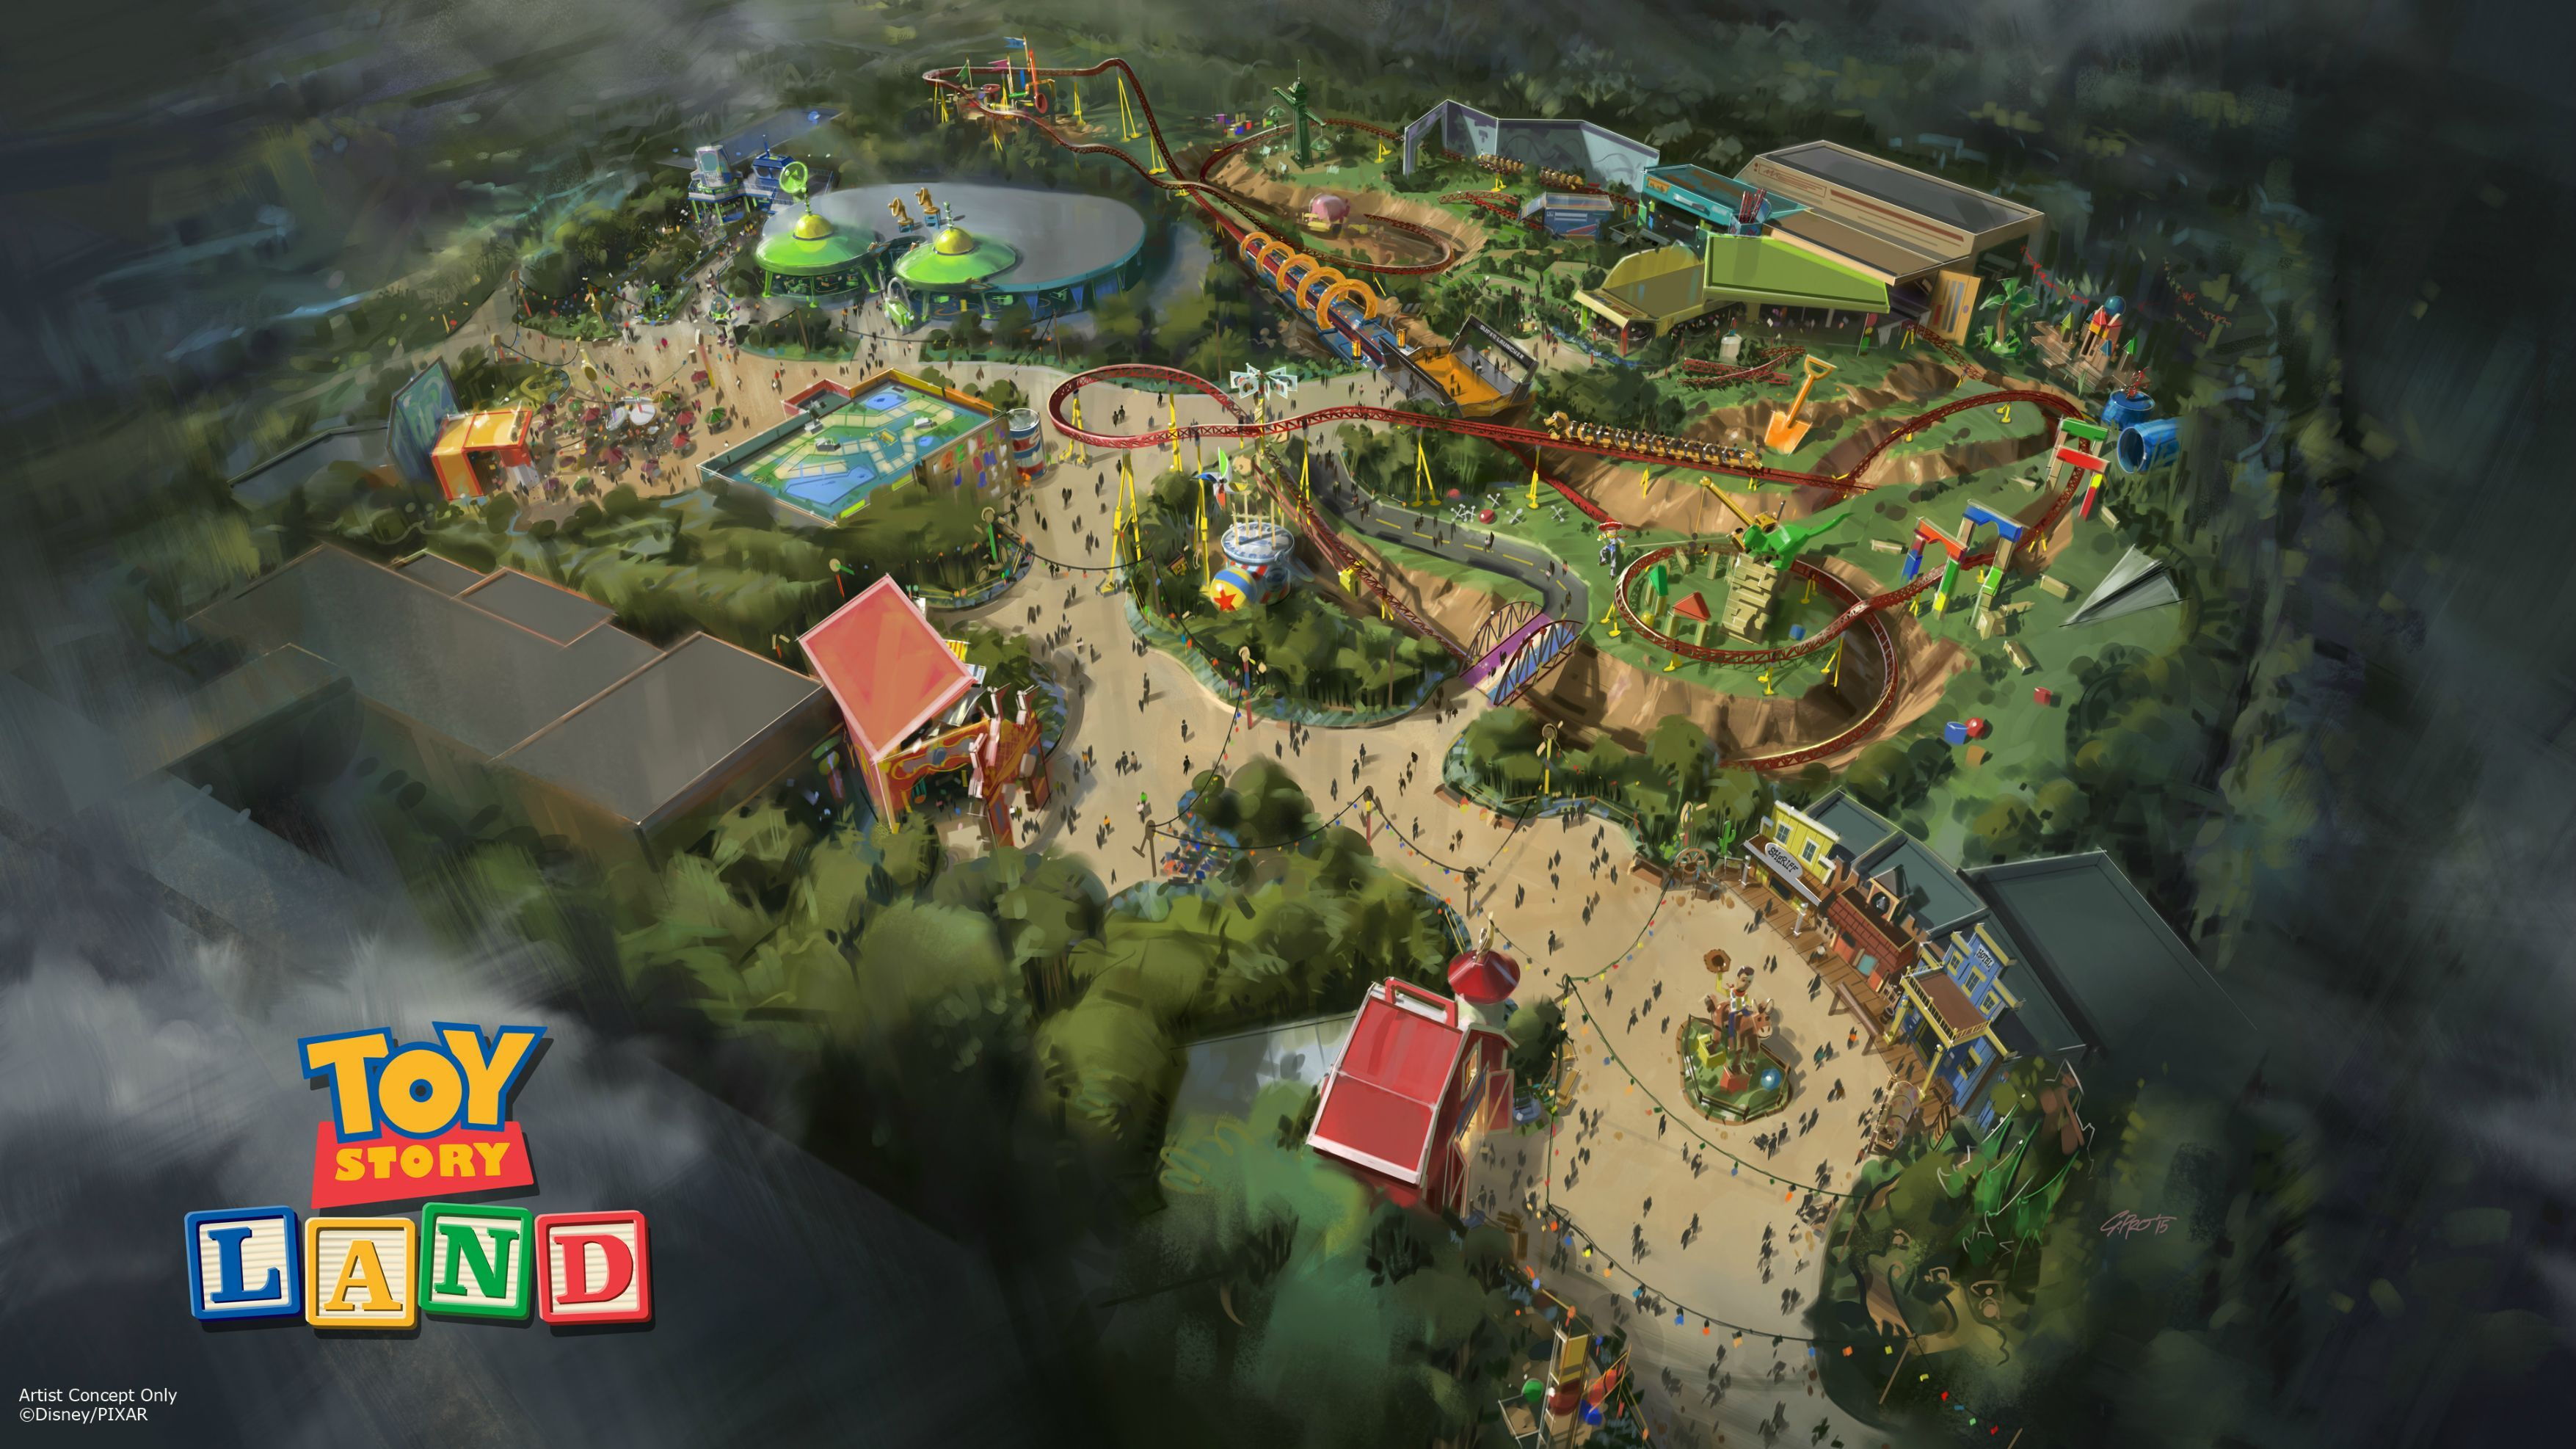 Toy Story Land coming to Disney World